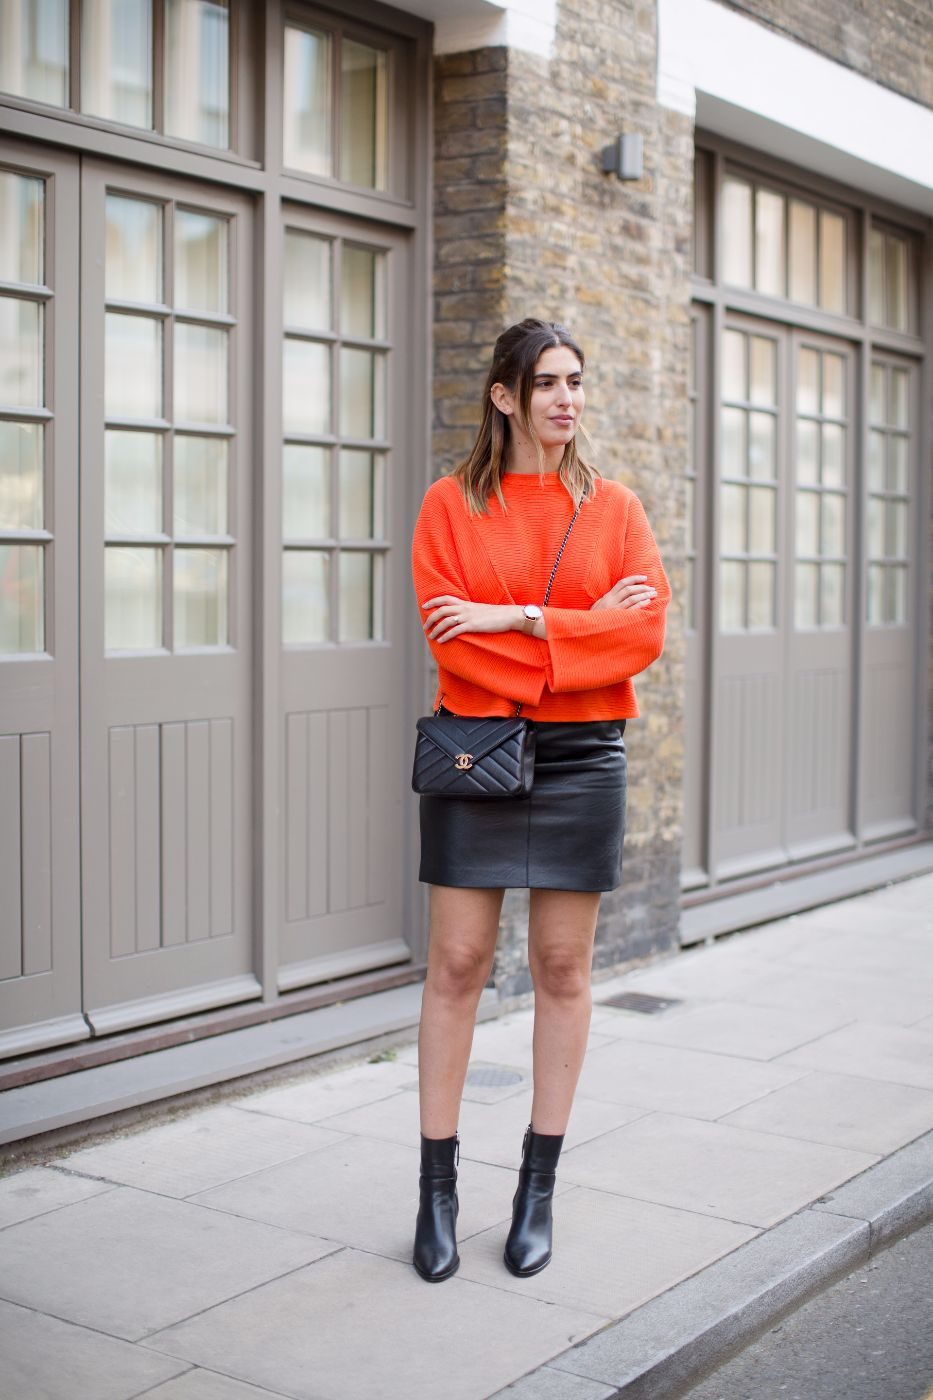 lily-pebbles-styling-leather-skirt-3-ways-video-fashion-march-2017-25